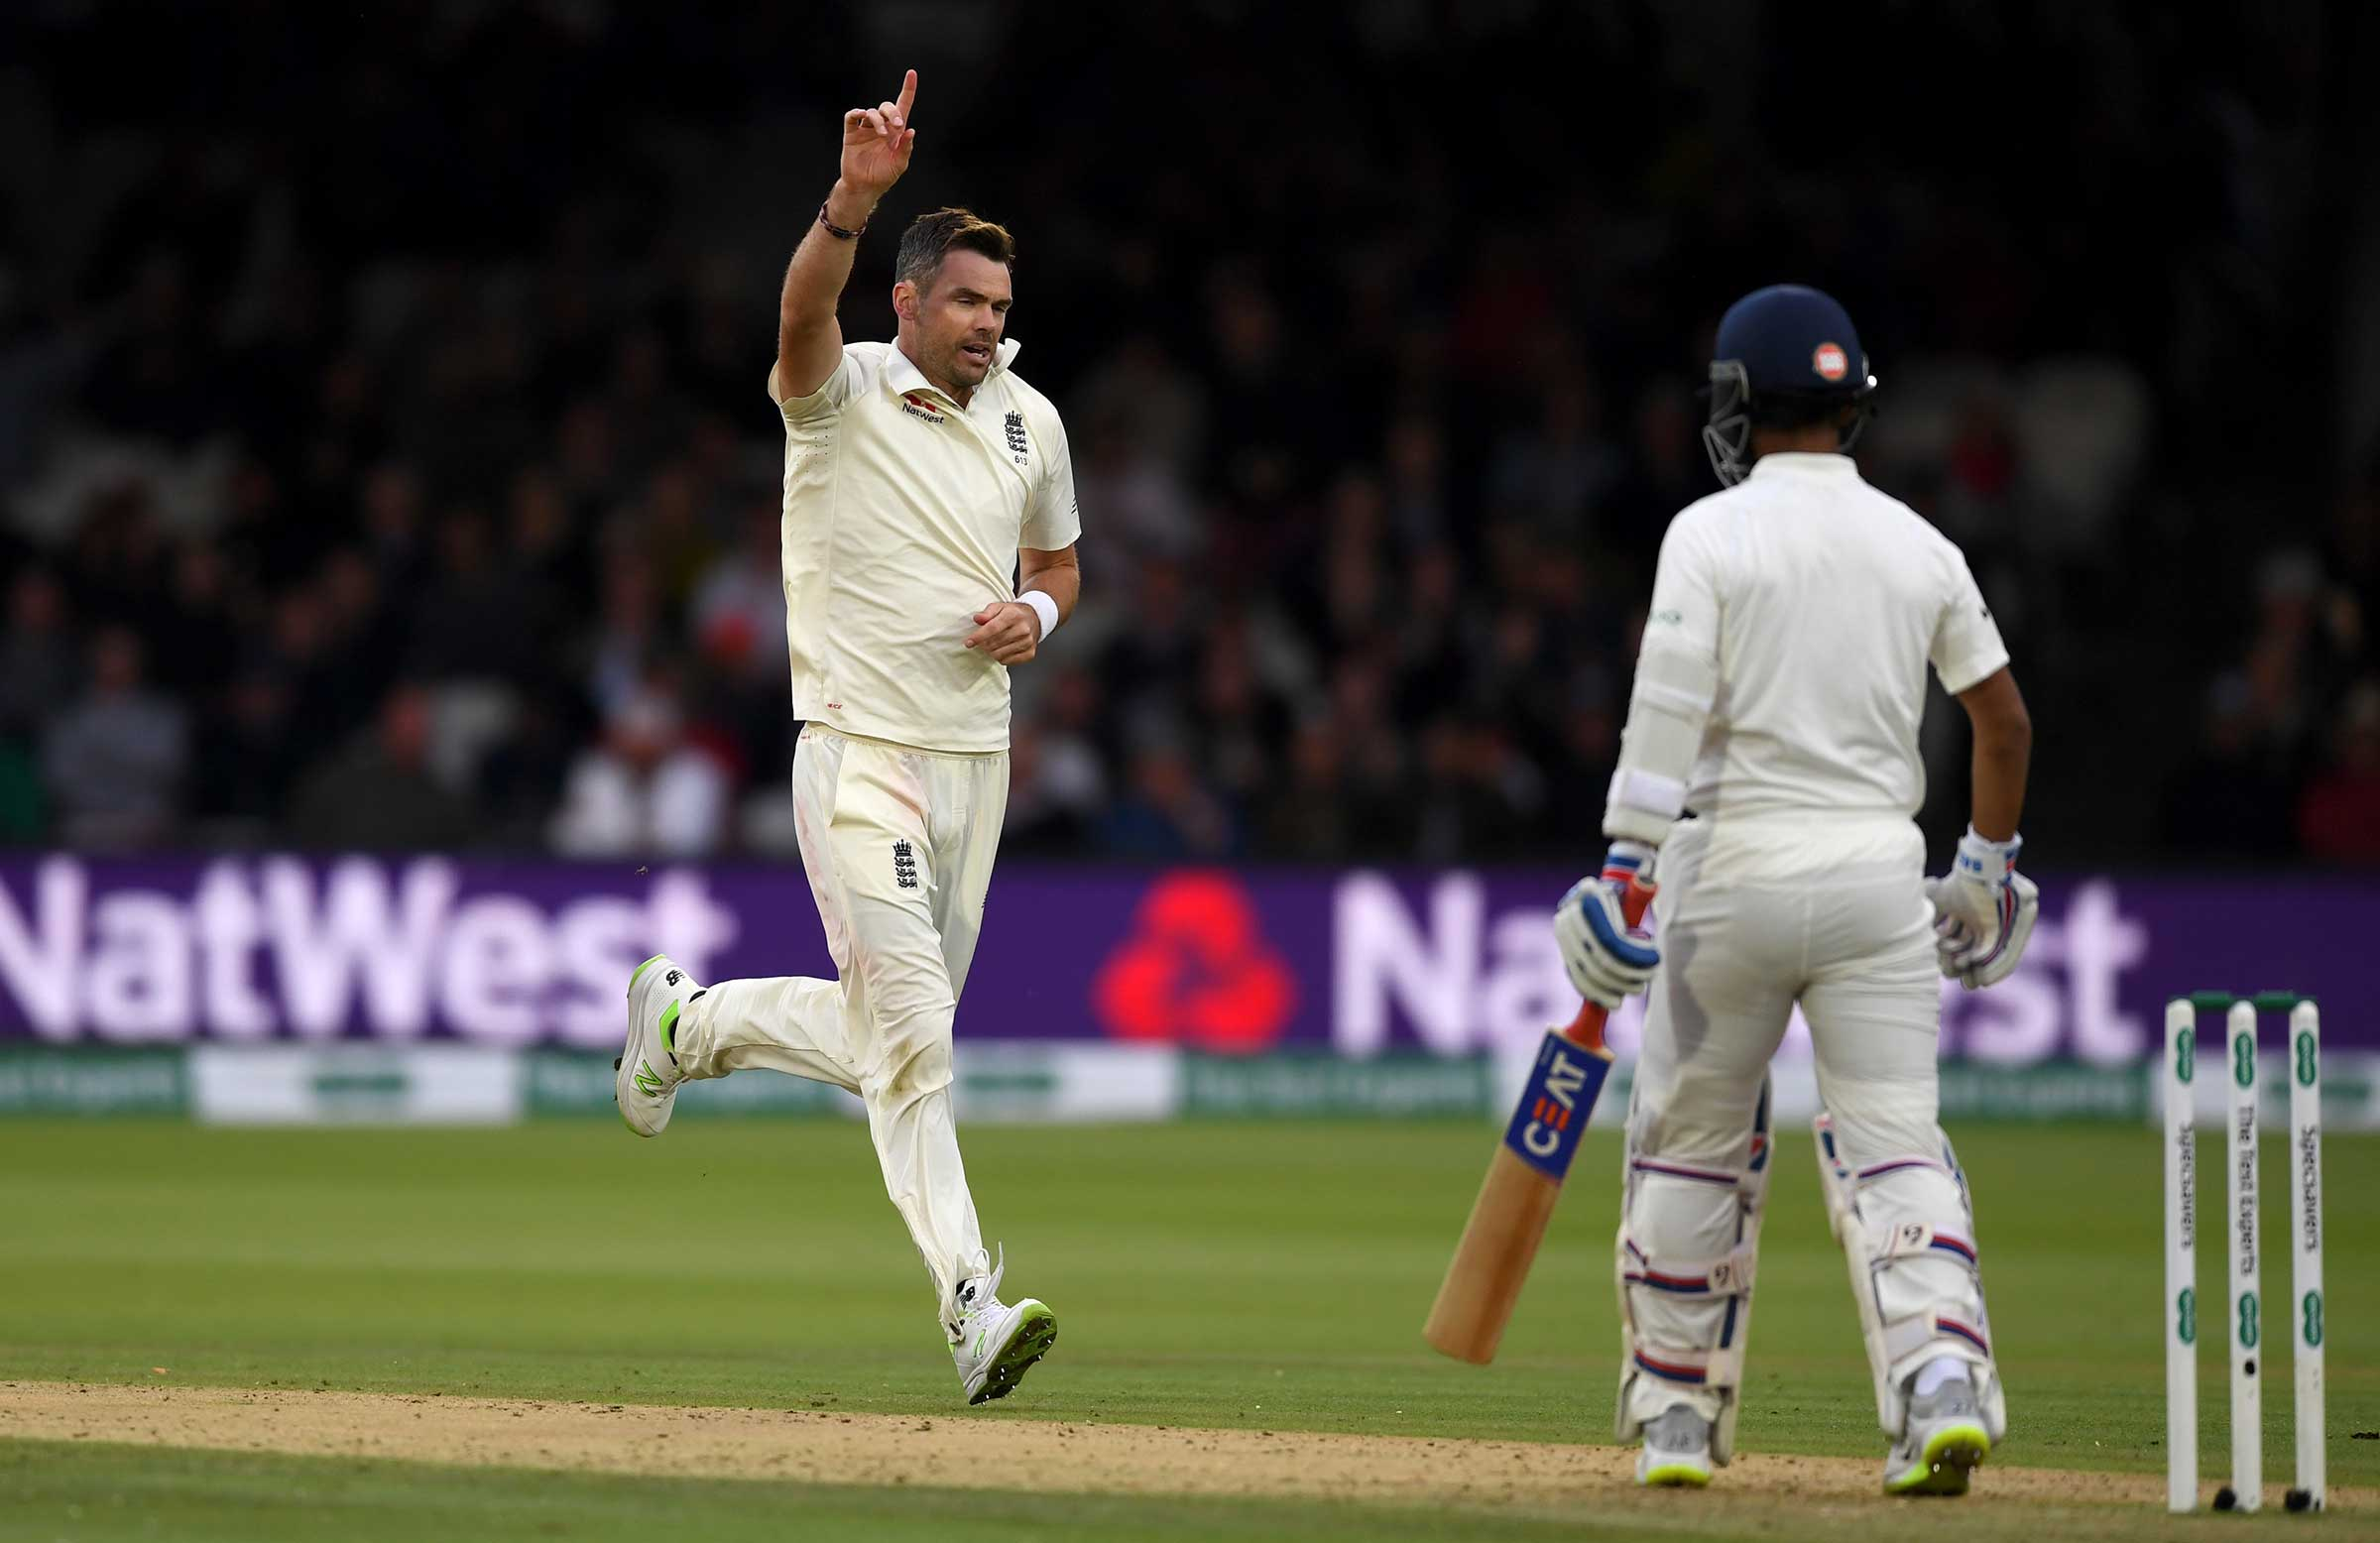 Anderson removed Rahane // Getty